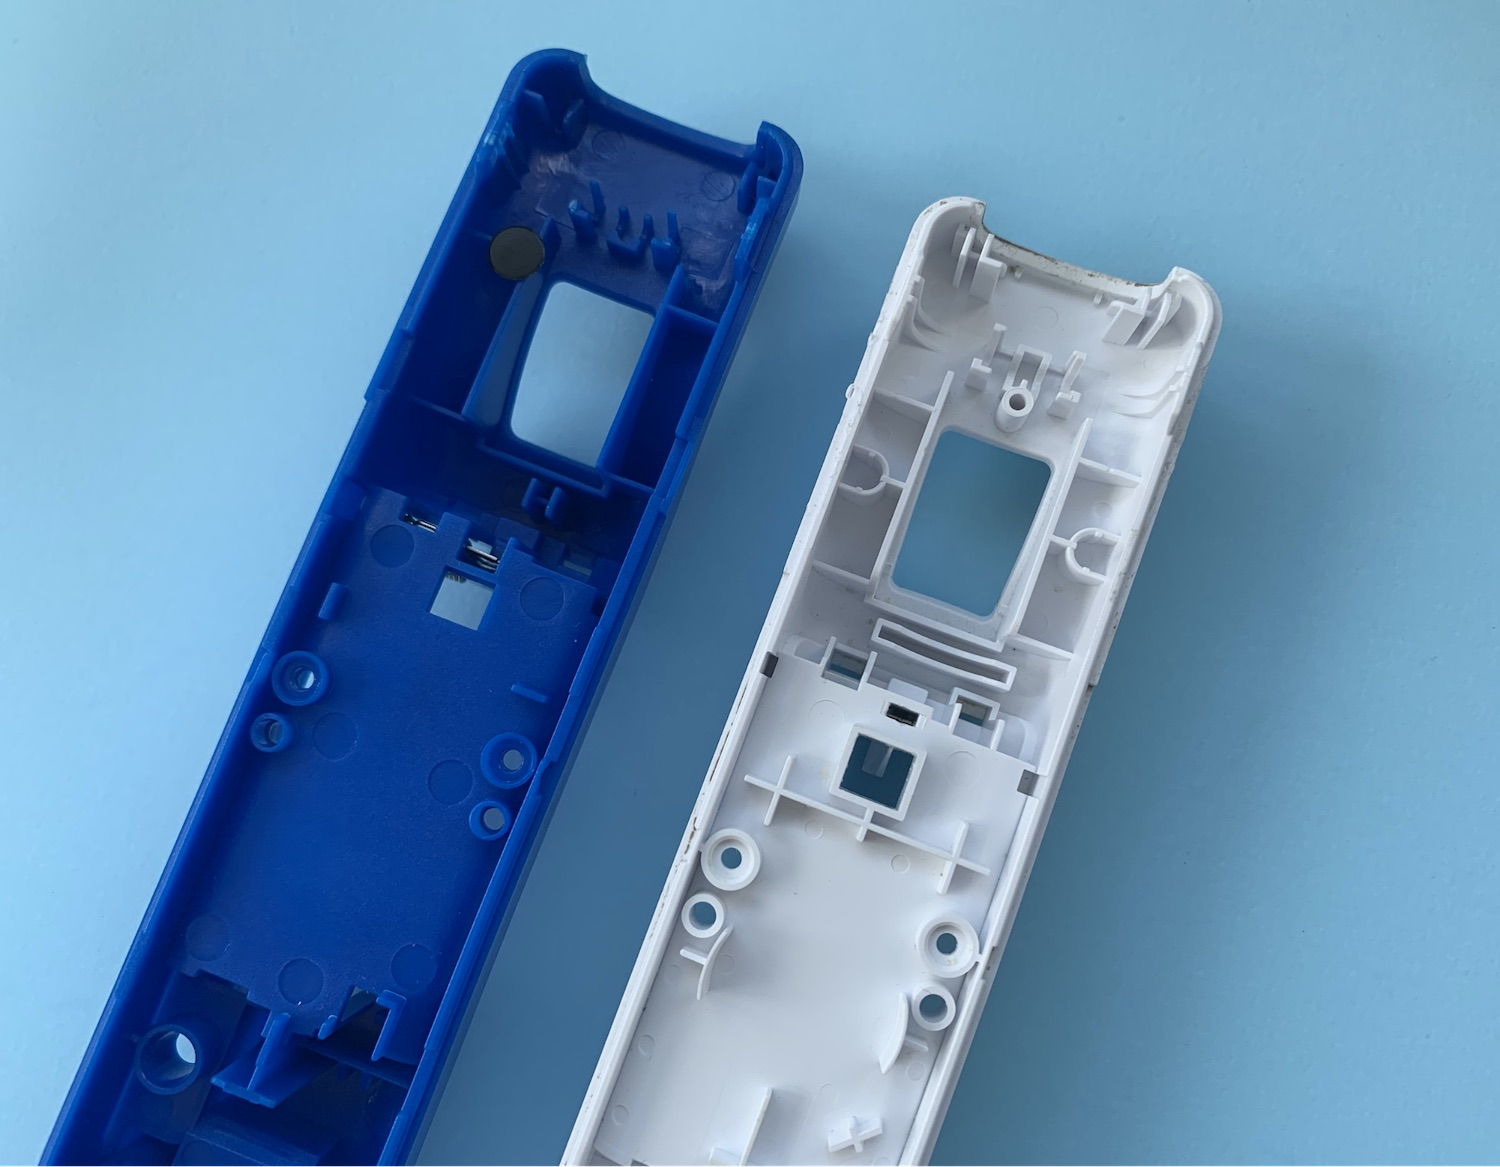 Wiimote and fake Wiimote enclosures